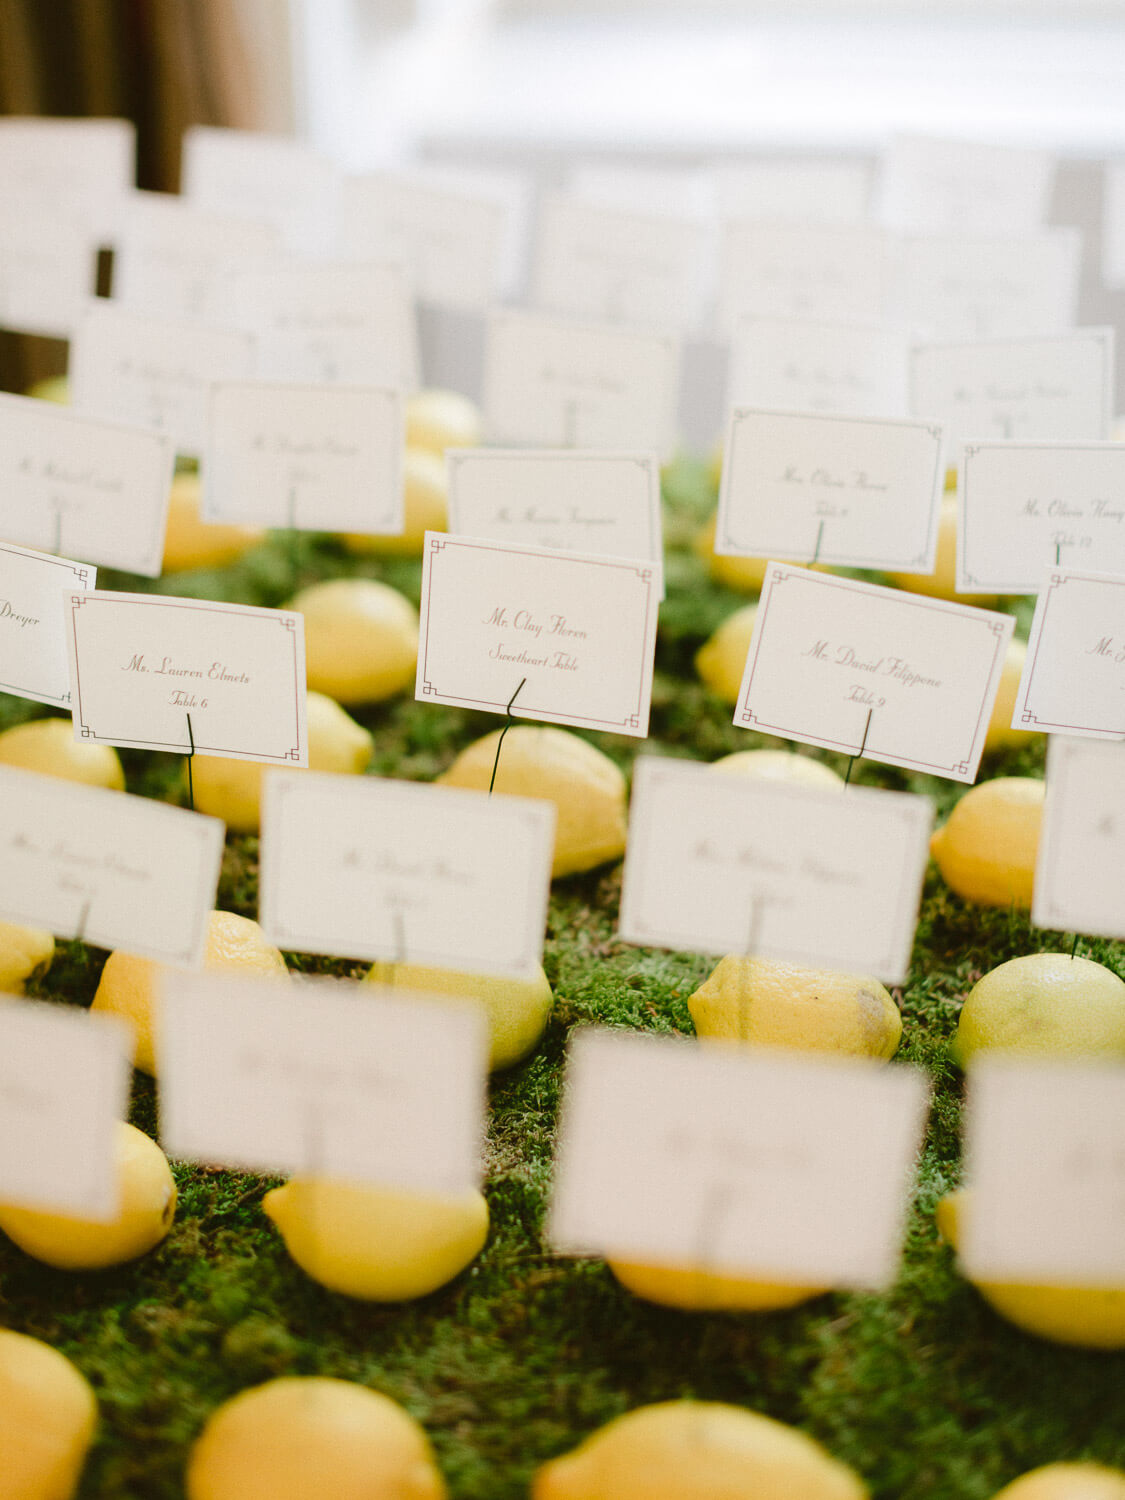 lemon place cards for wedding reception in Seteais Palace Sintra by Portugal Wedding Photographer